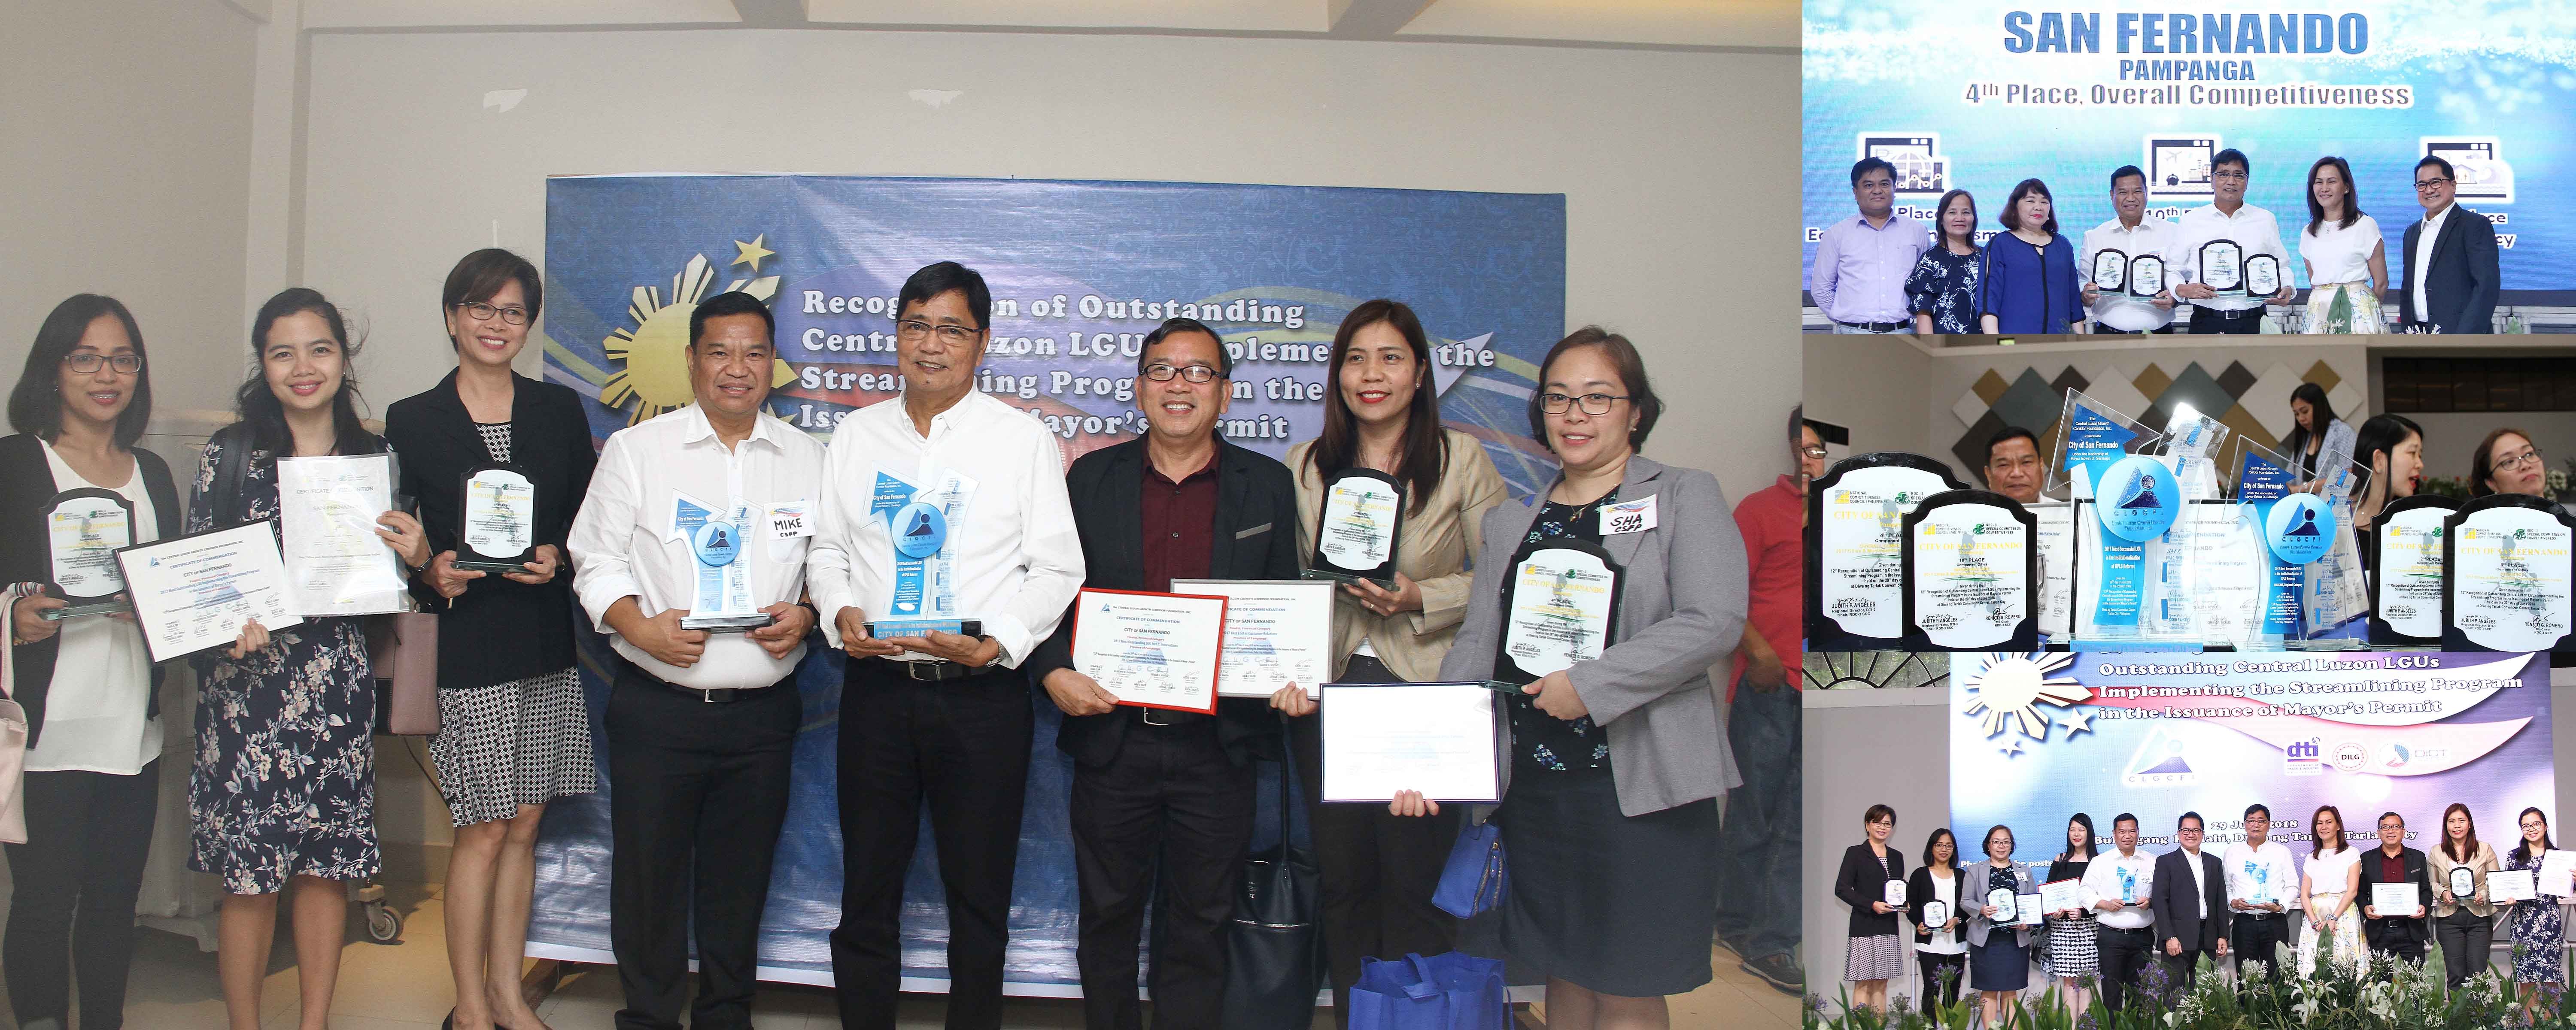 CSF recognized as Outstanding LGU in BPLS reform